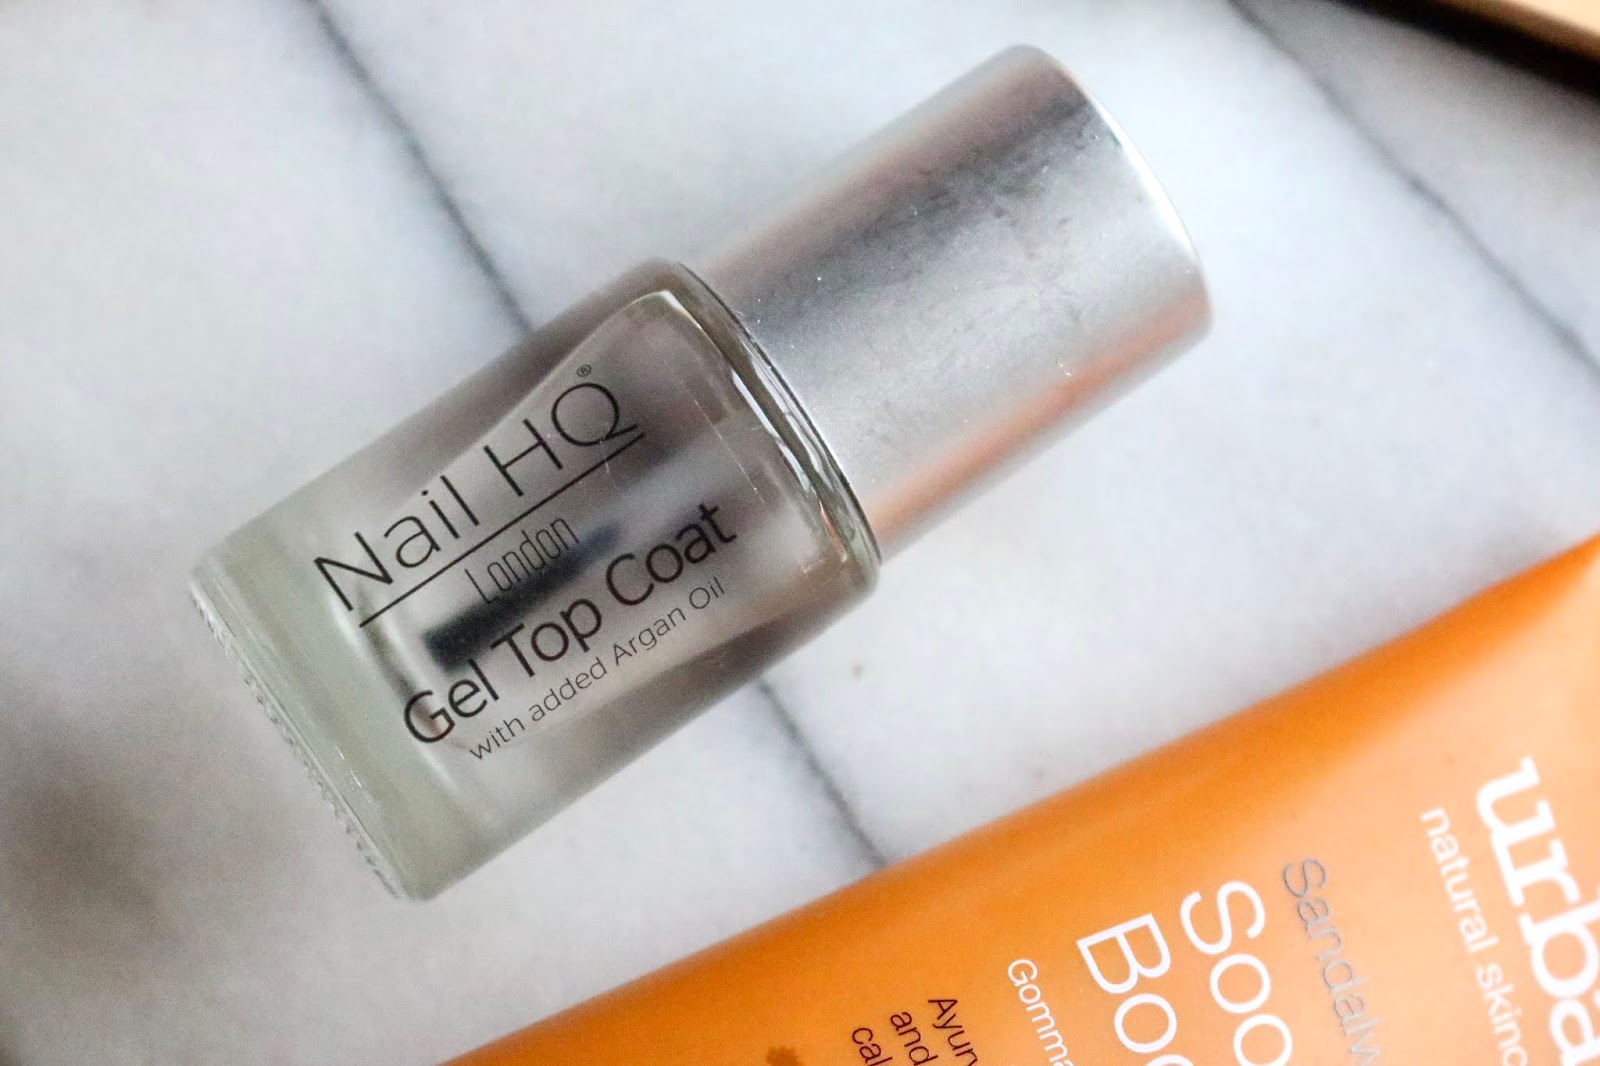 NAIL HQ GEL TOP COAT